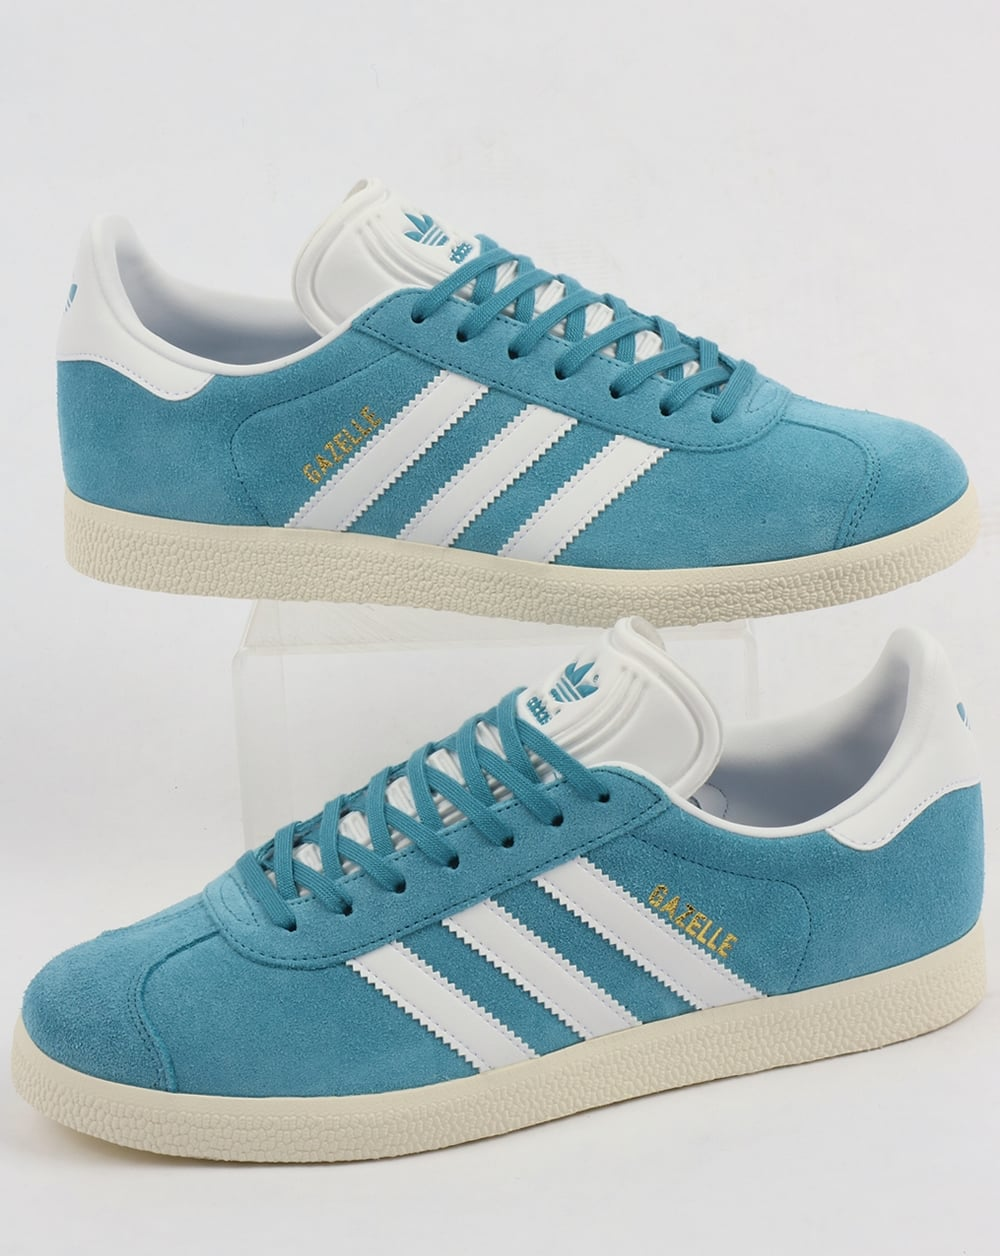 en soldes 5bef3 92c4a Adidas Gazelle Vintage Trainers Light Blue/White